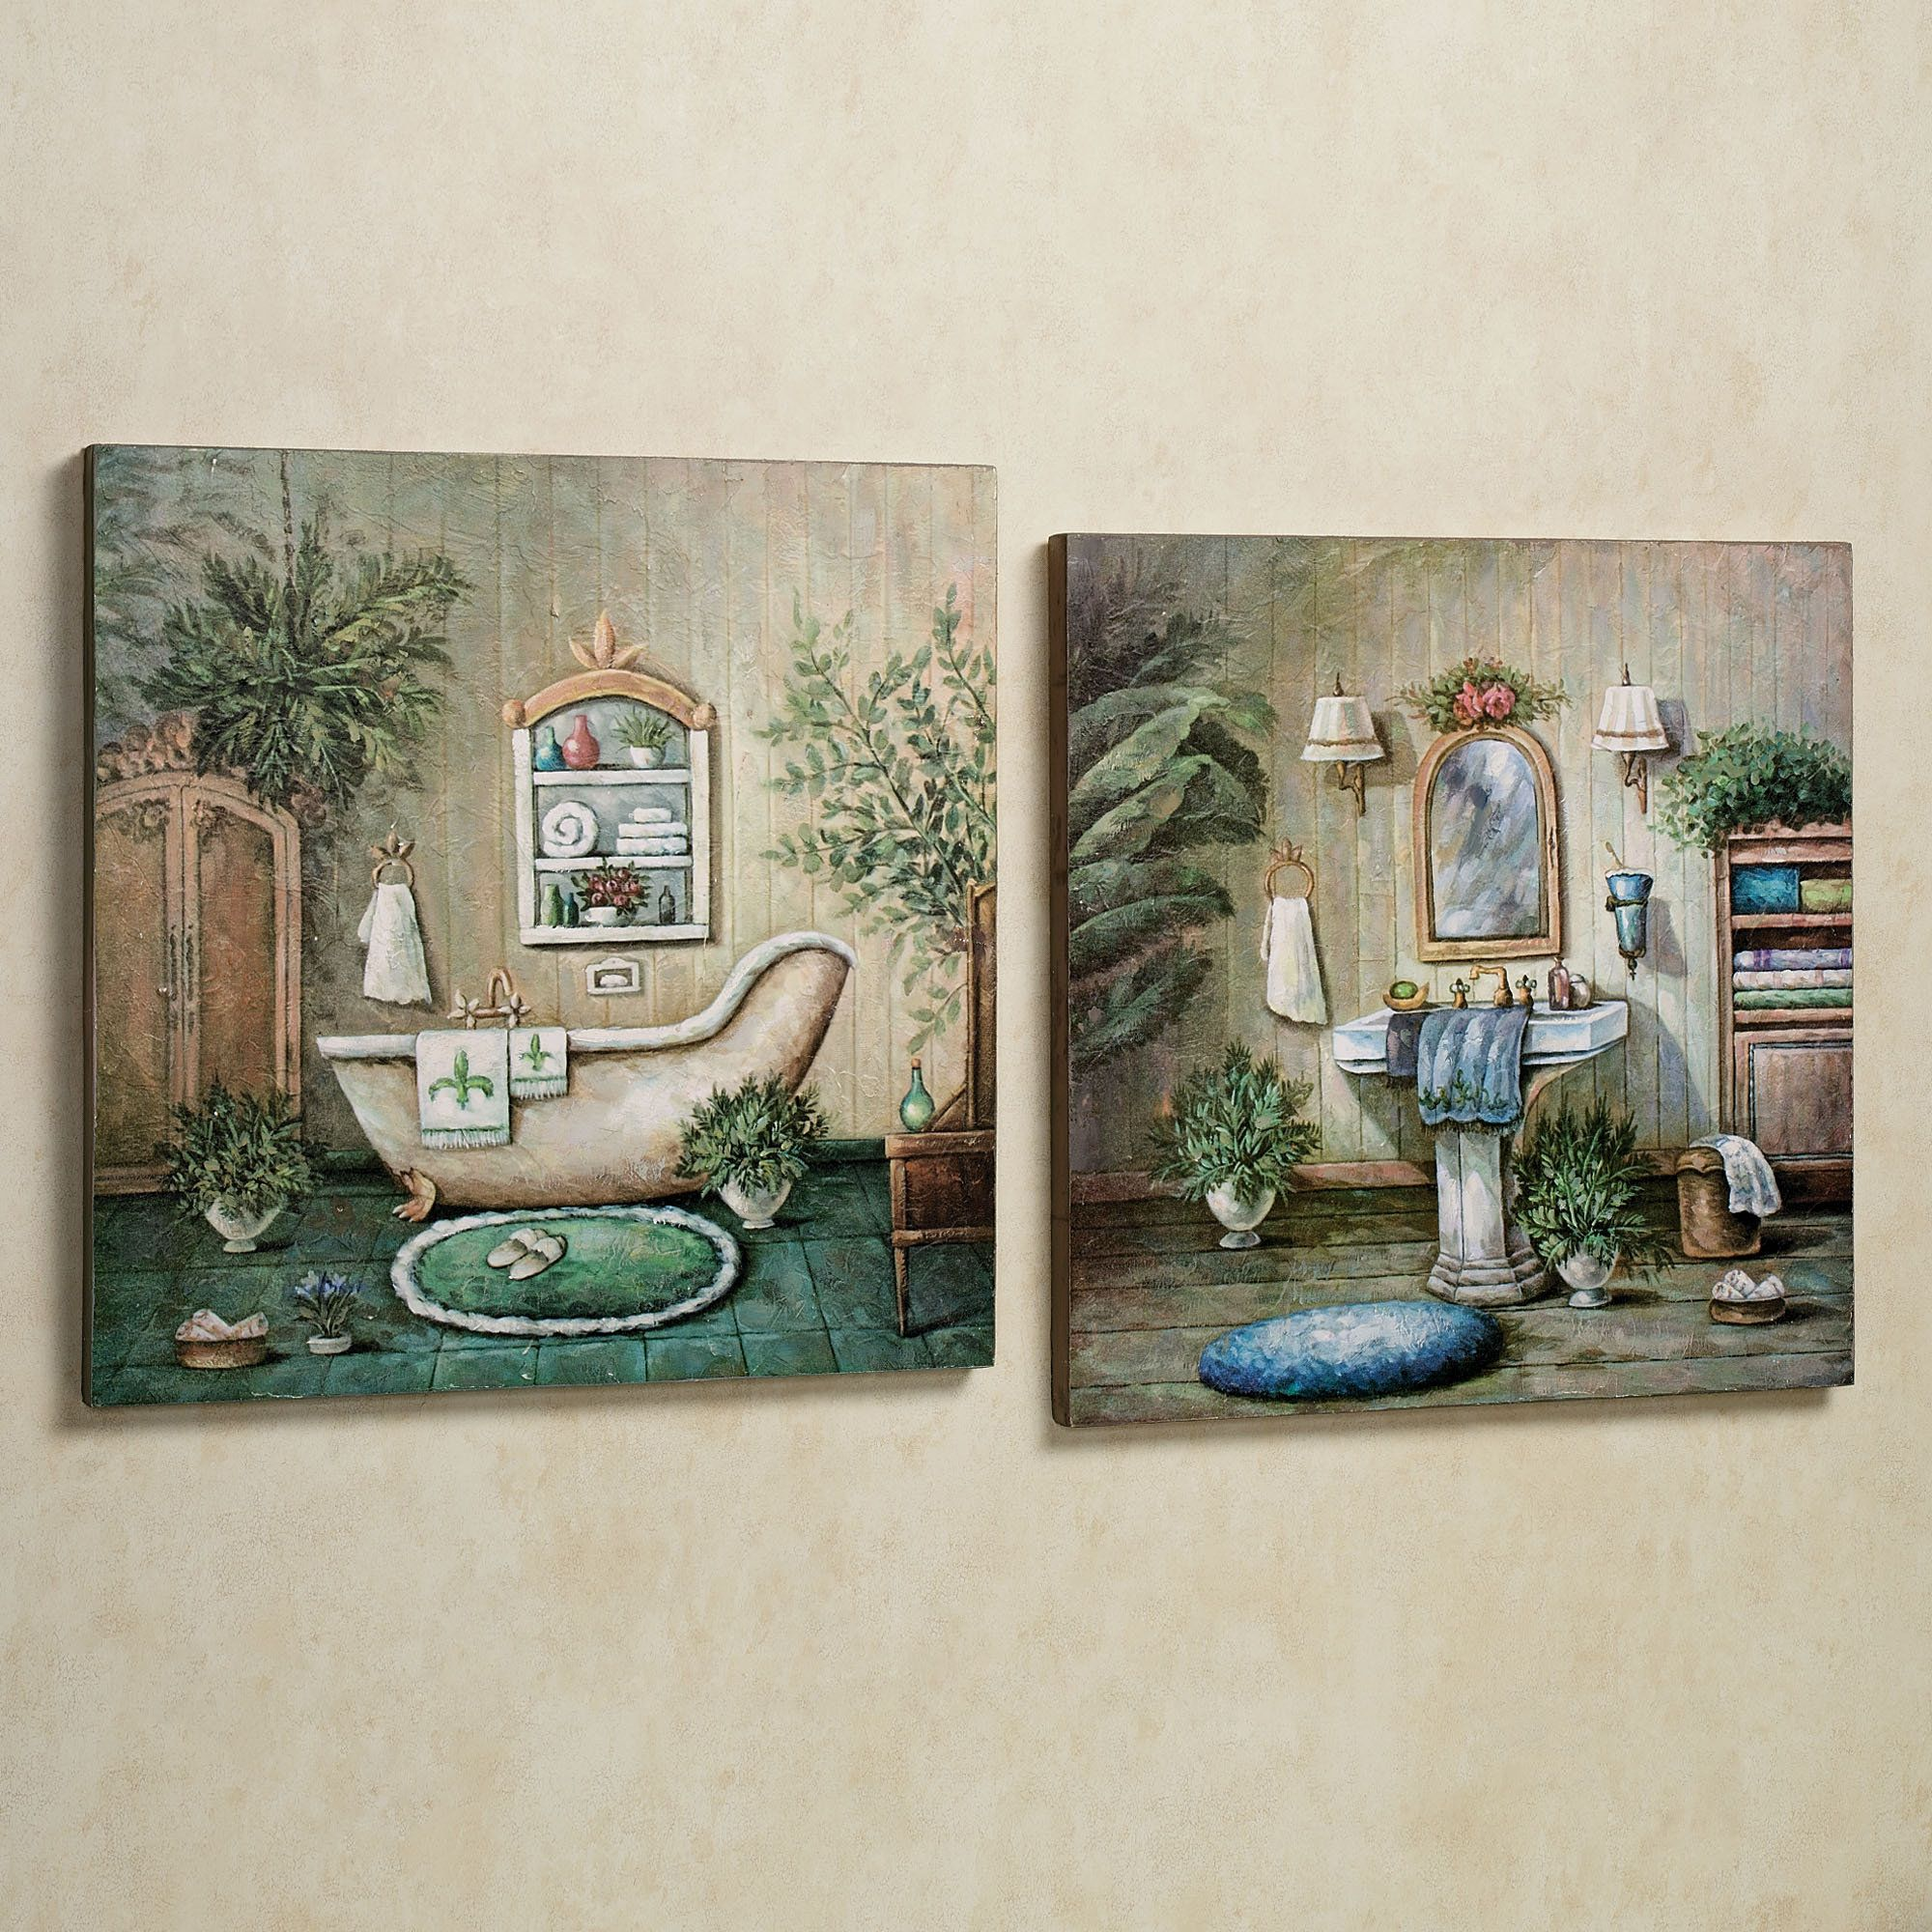 Blissful bath wooden wall art plaque set wooden wall art blissful bath wooden wall art plaque set amipublicfo Images